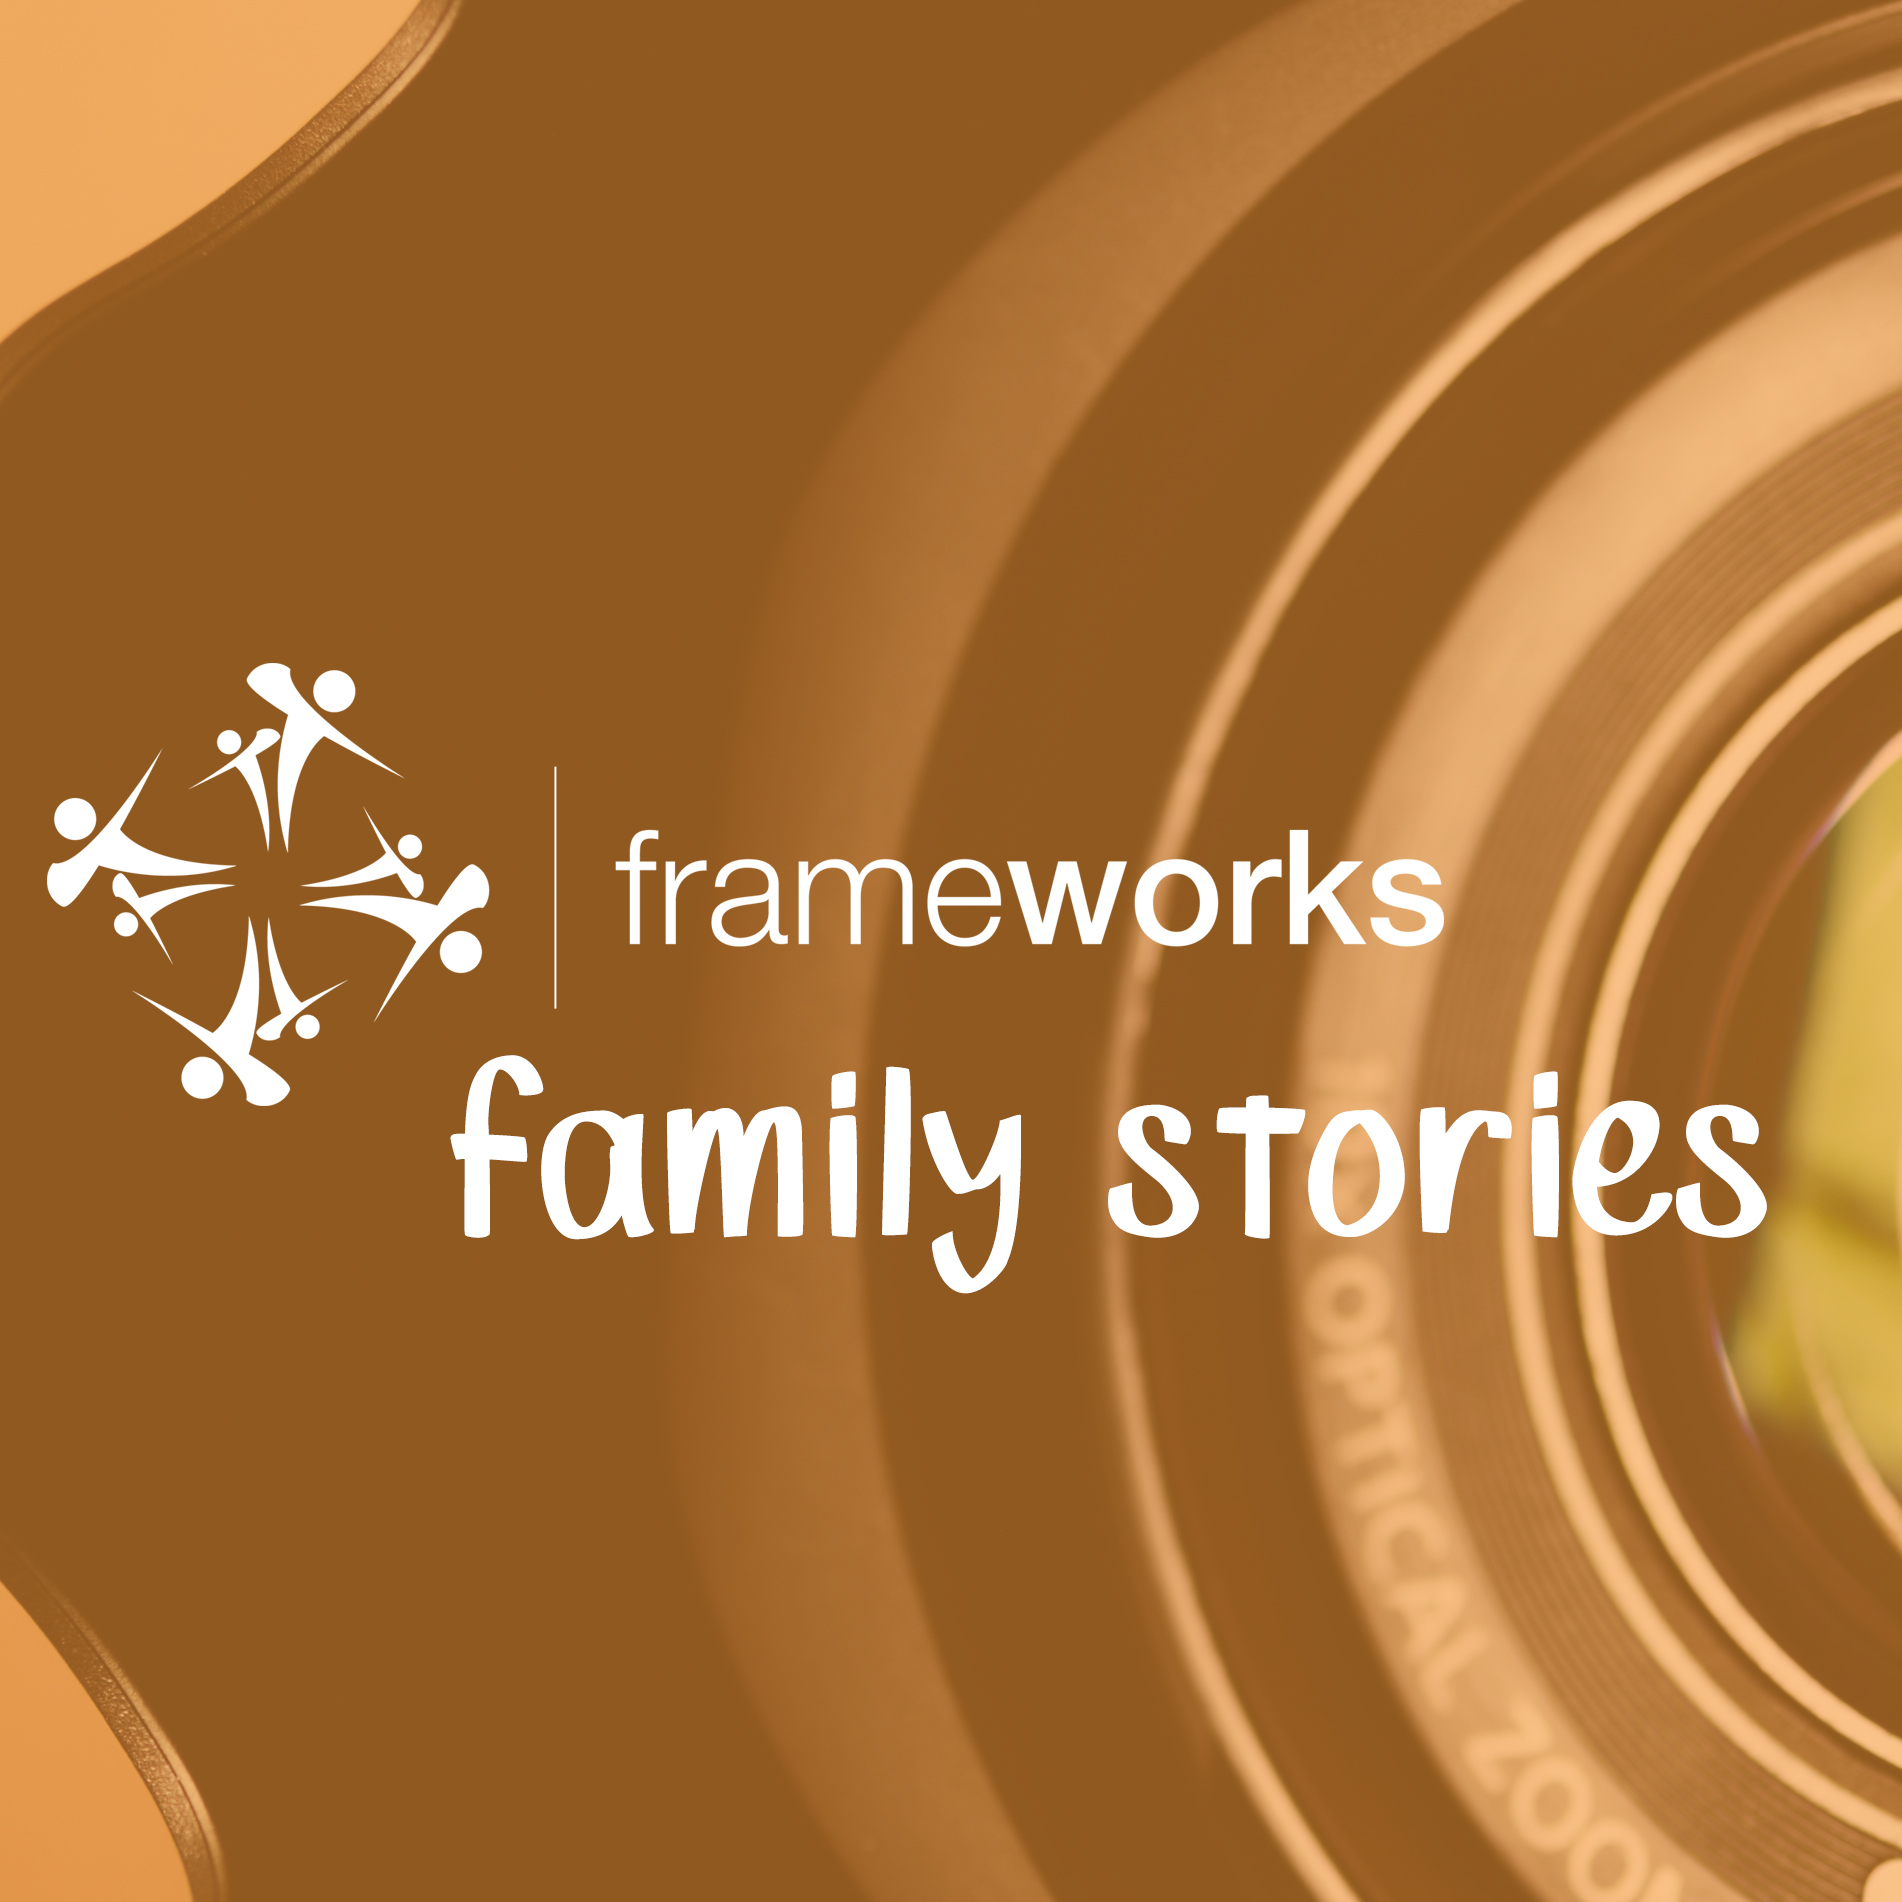 frameworks family stories thumbnail.jpg